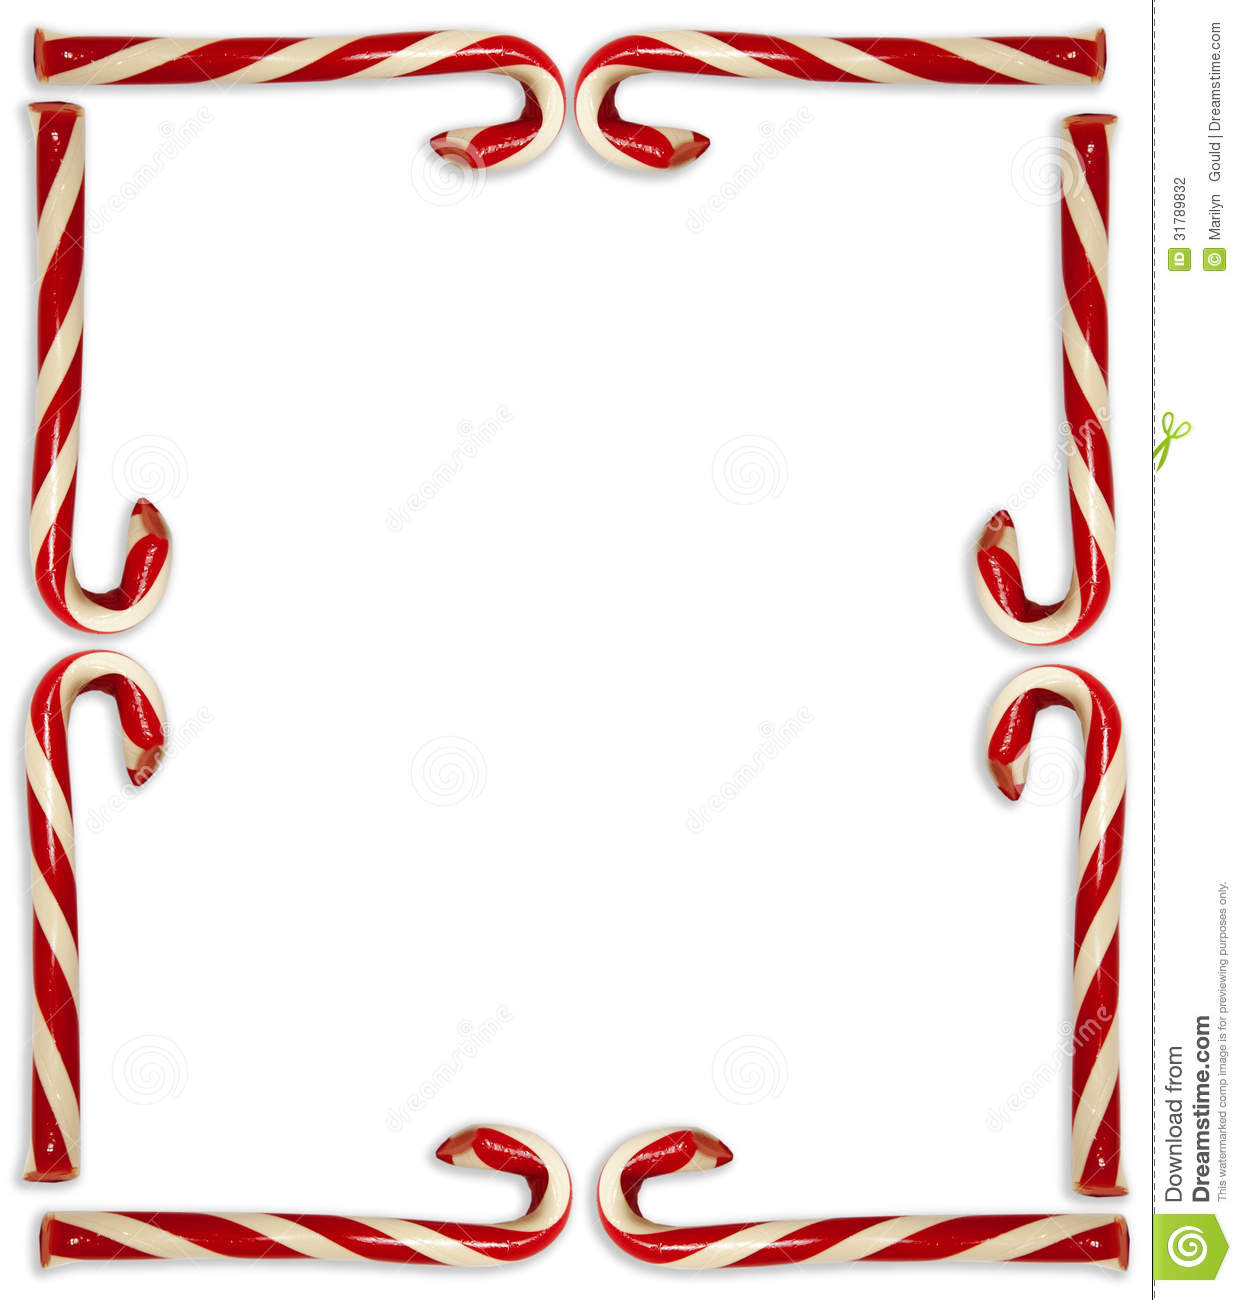 Candy cane border. Free clipart download best